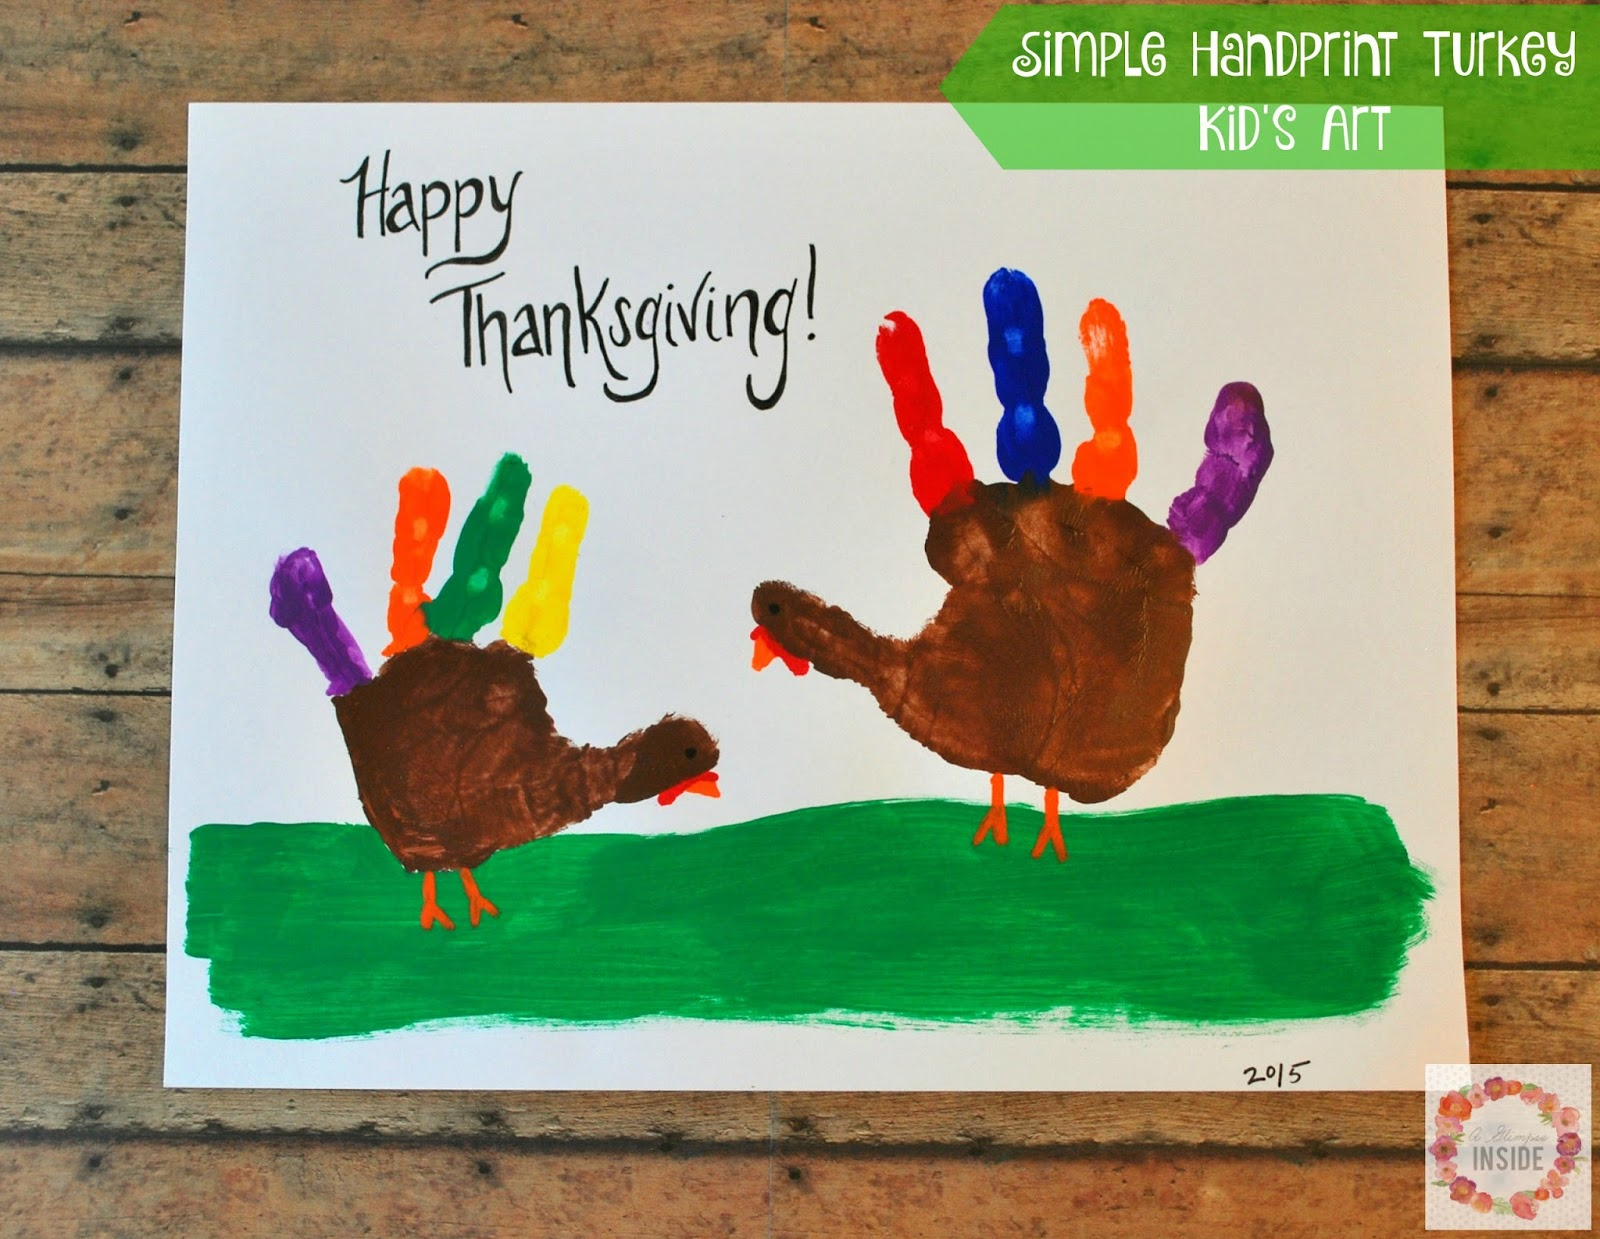 http://www.aglimpseinsideblog.com/2015/11/simple-handprint-turkey-kids-art.html